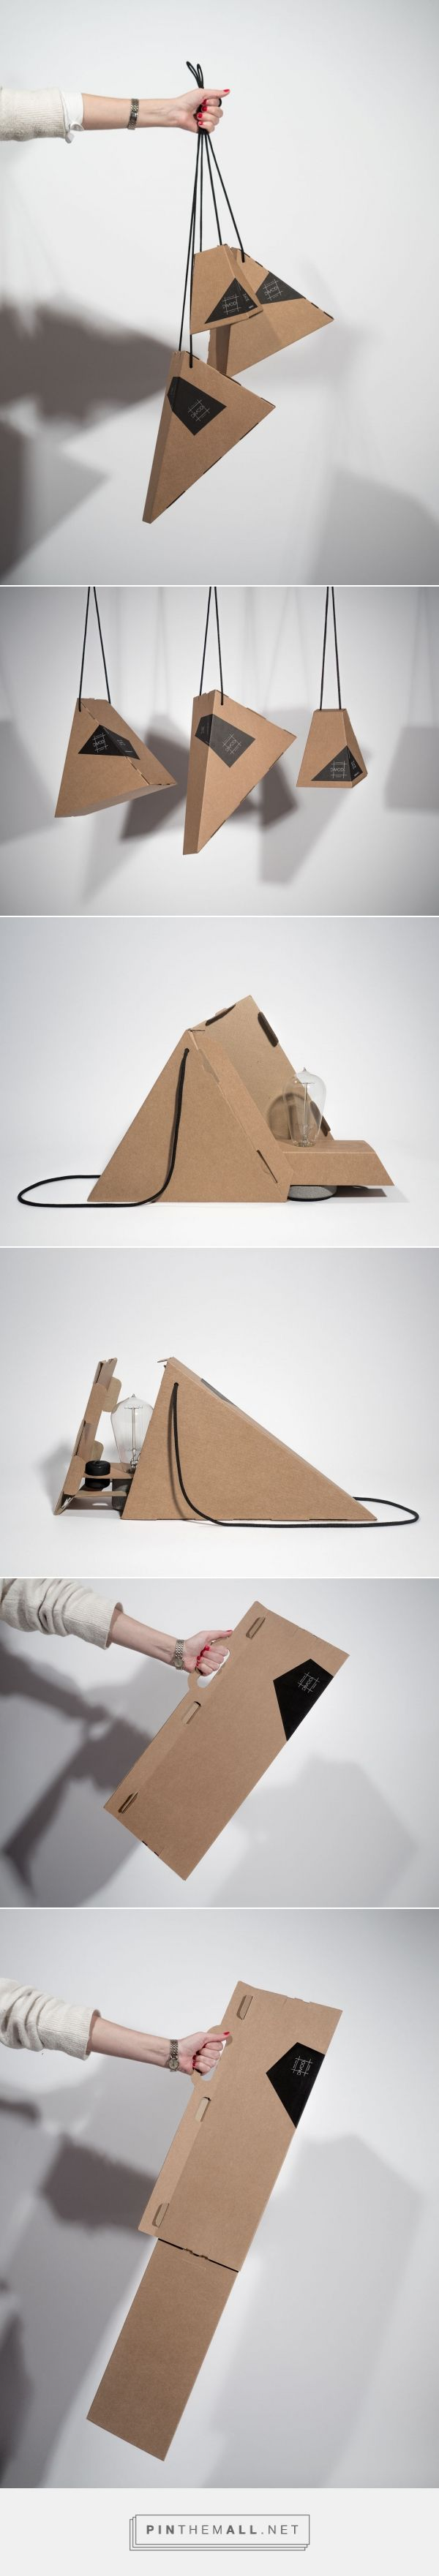 Simple Smart Modular lamps packaging design by talc design studio - http://www.packagingoftheworld.com/2017/05/simple-smart-modular.html